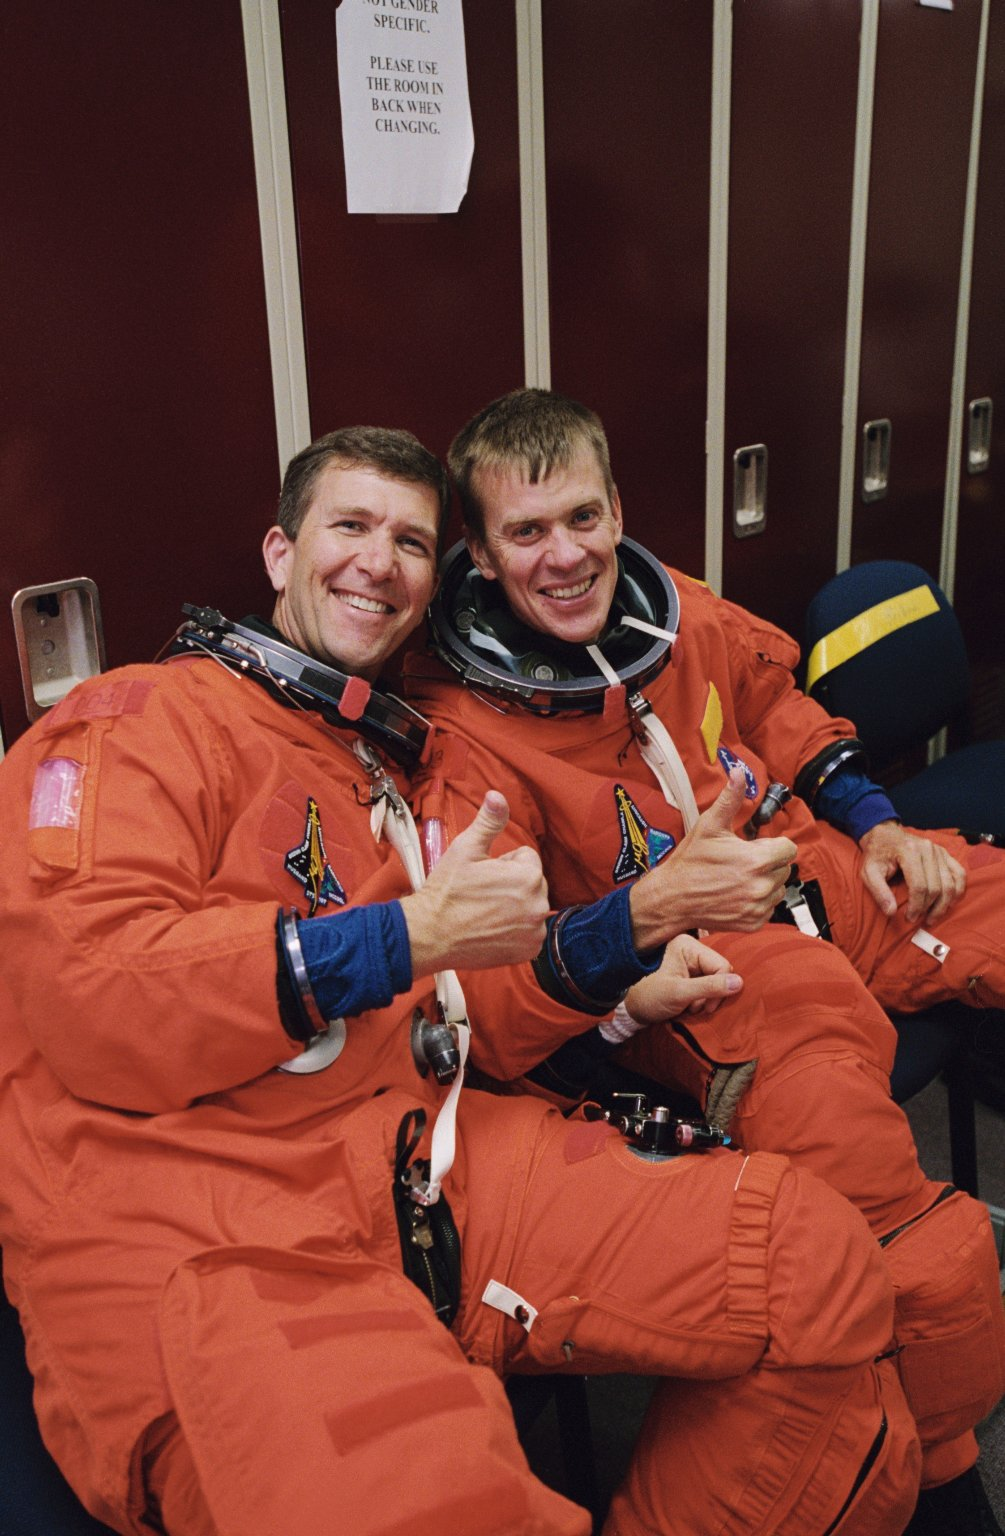 STS-107 Astronauts Rick Husband and Willie McCool : NASA ...